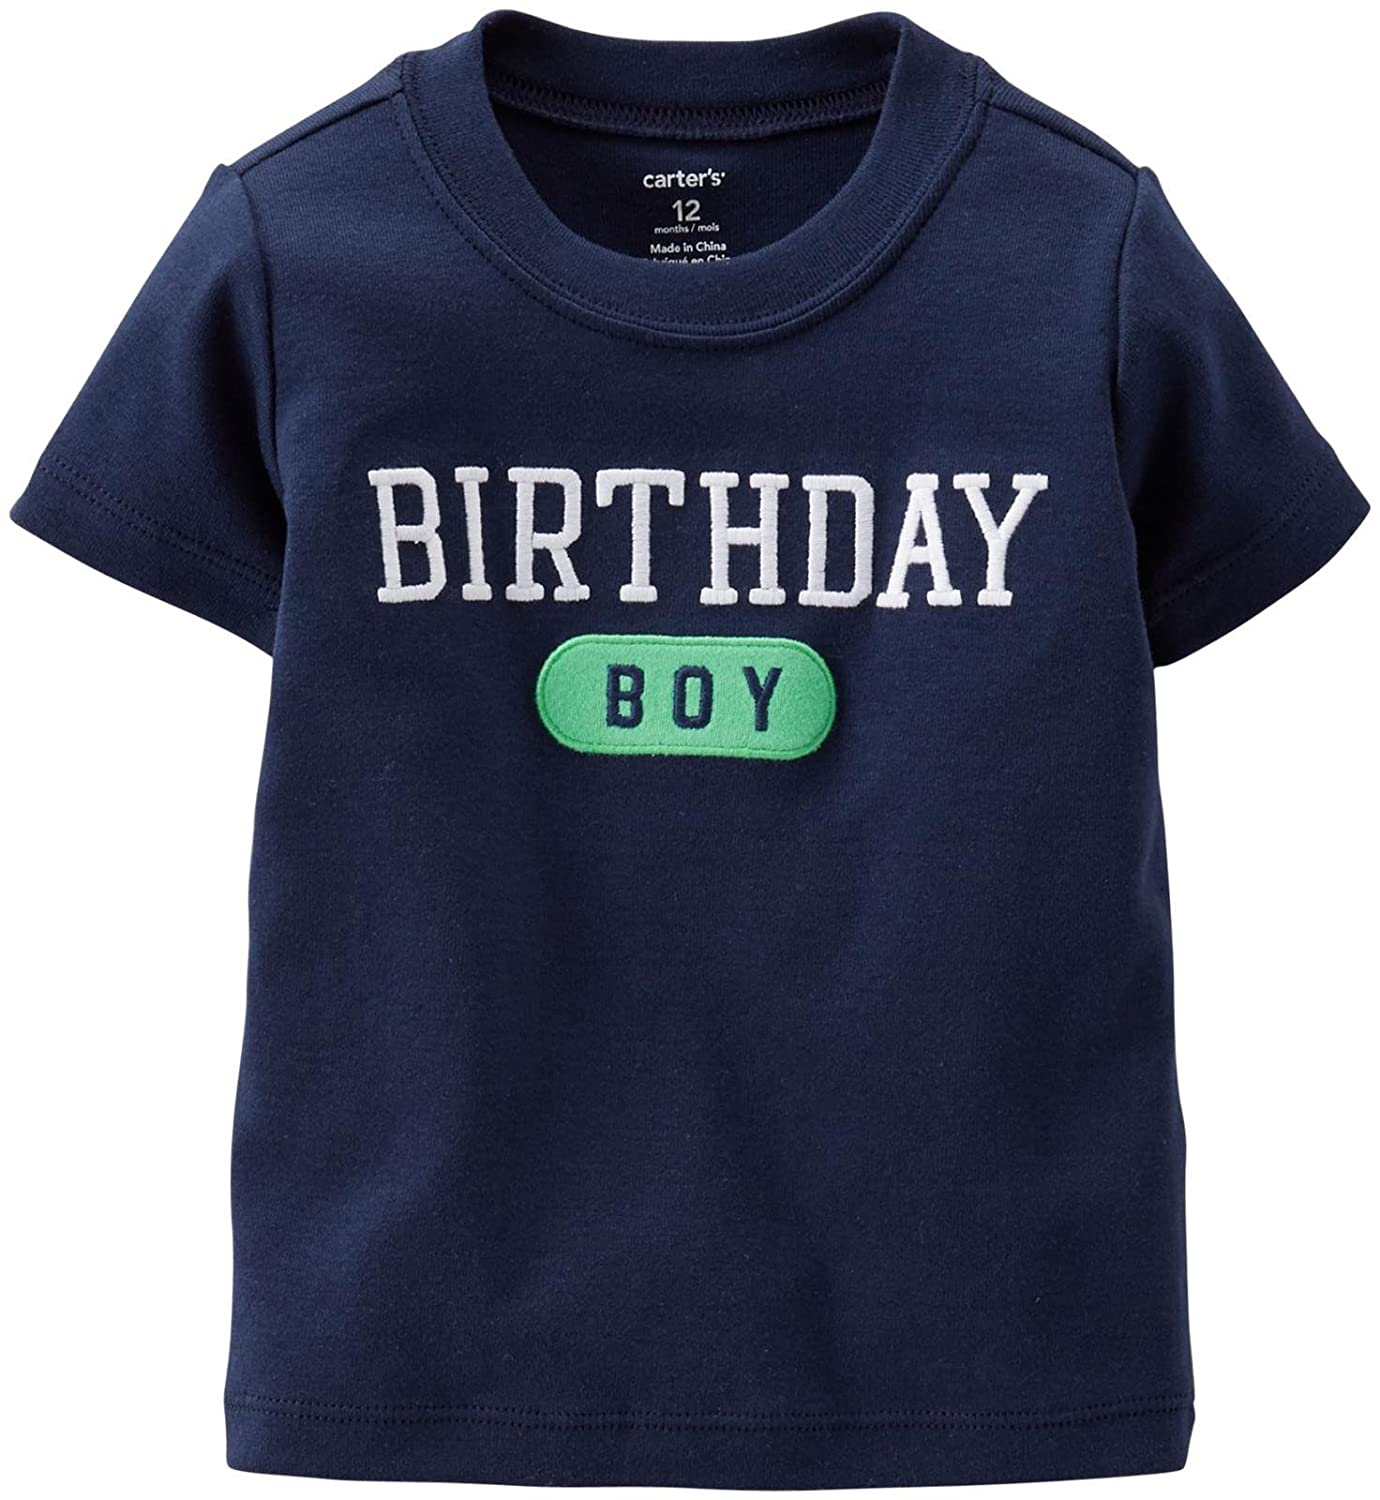 【激安】 Carter's Months SHIRT ベビーボーイズ 9 Months Birthday SHIRT Boy Birthday B00SD1RSSU, ウィンズショップ:c207dd4d --- a0267596.xsph.ru